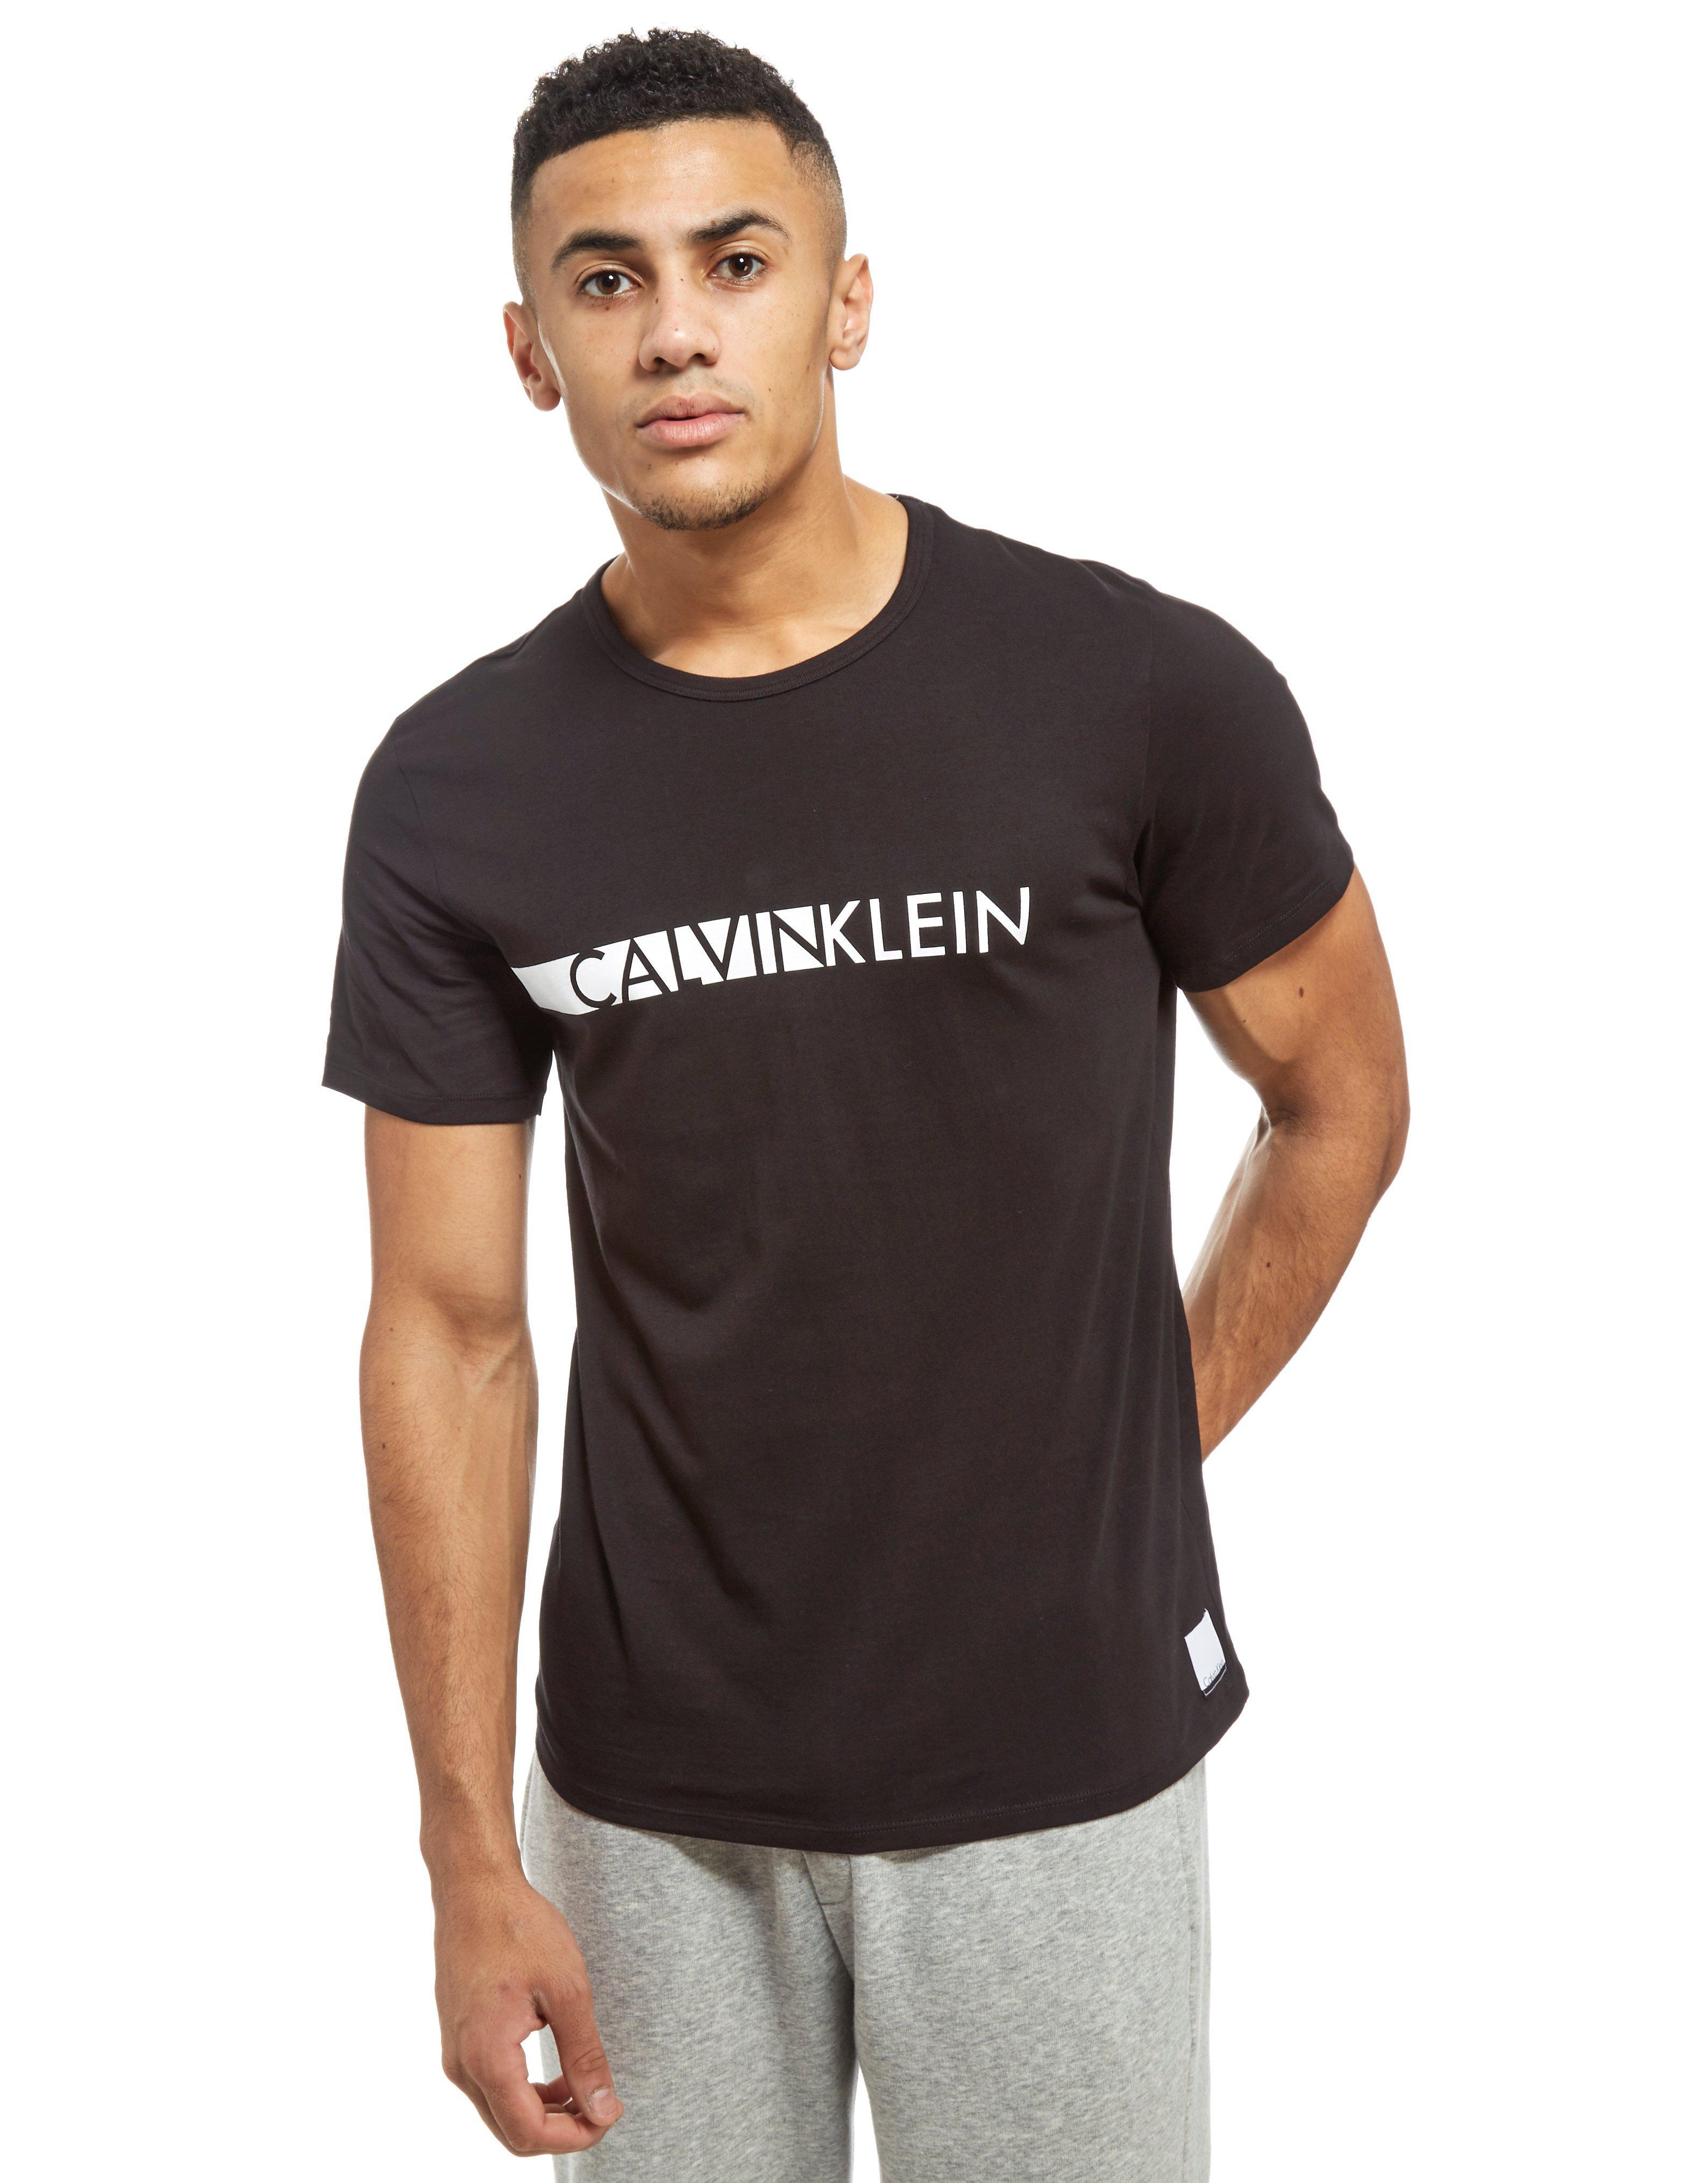 logo T-shirt - Black CALVIN KLEIN 205W39NYC Sale Latest Collections Clearance Online Cheap Real ucLYnRs